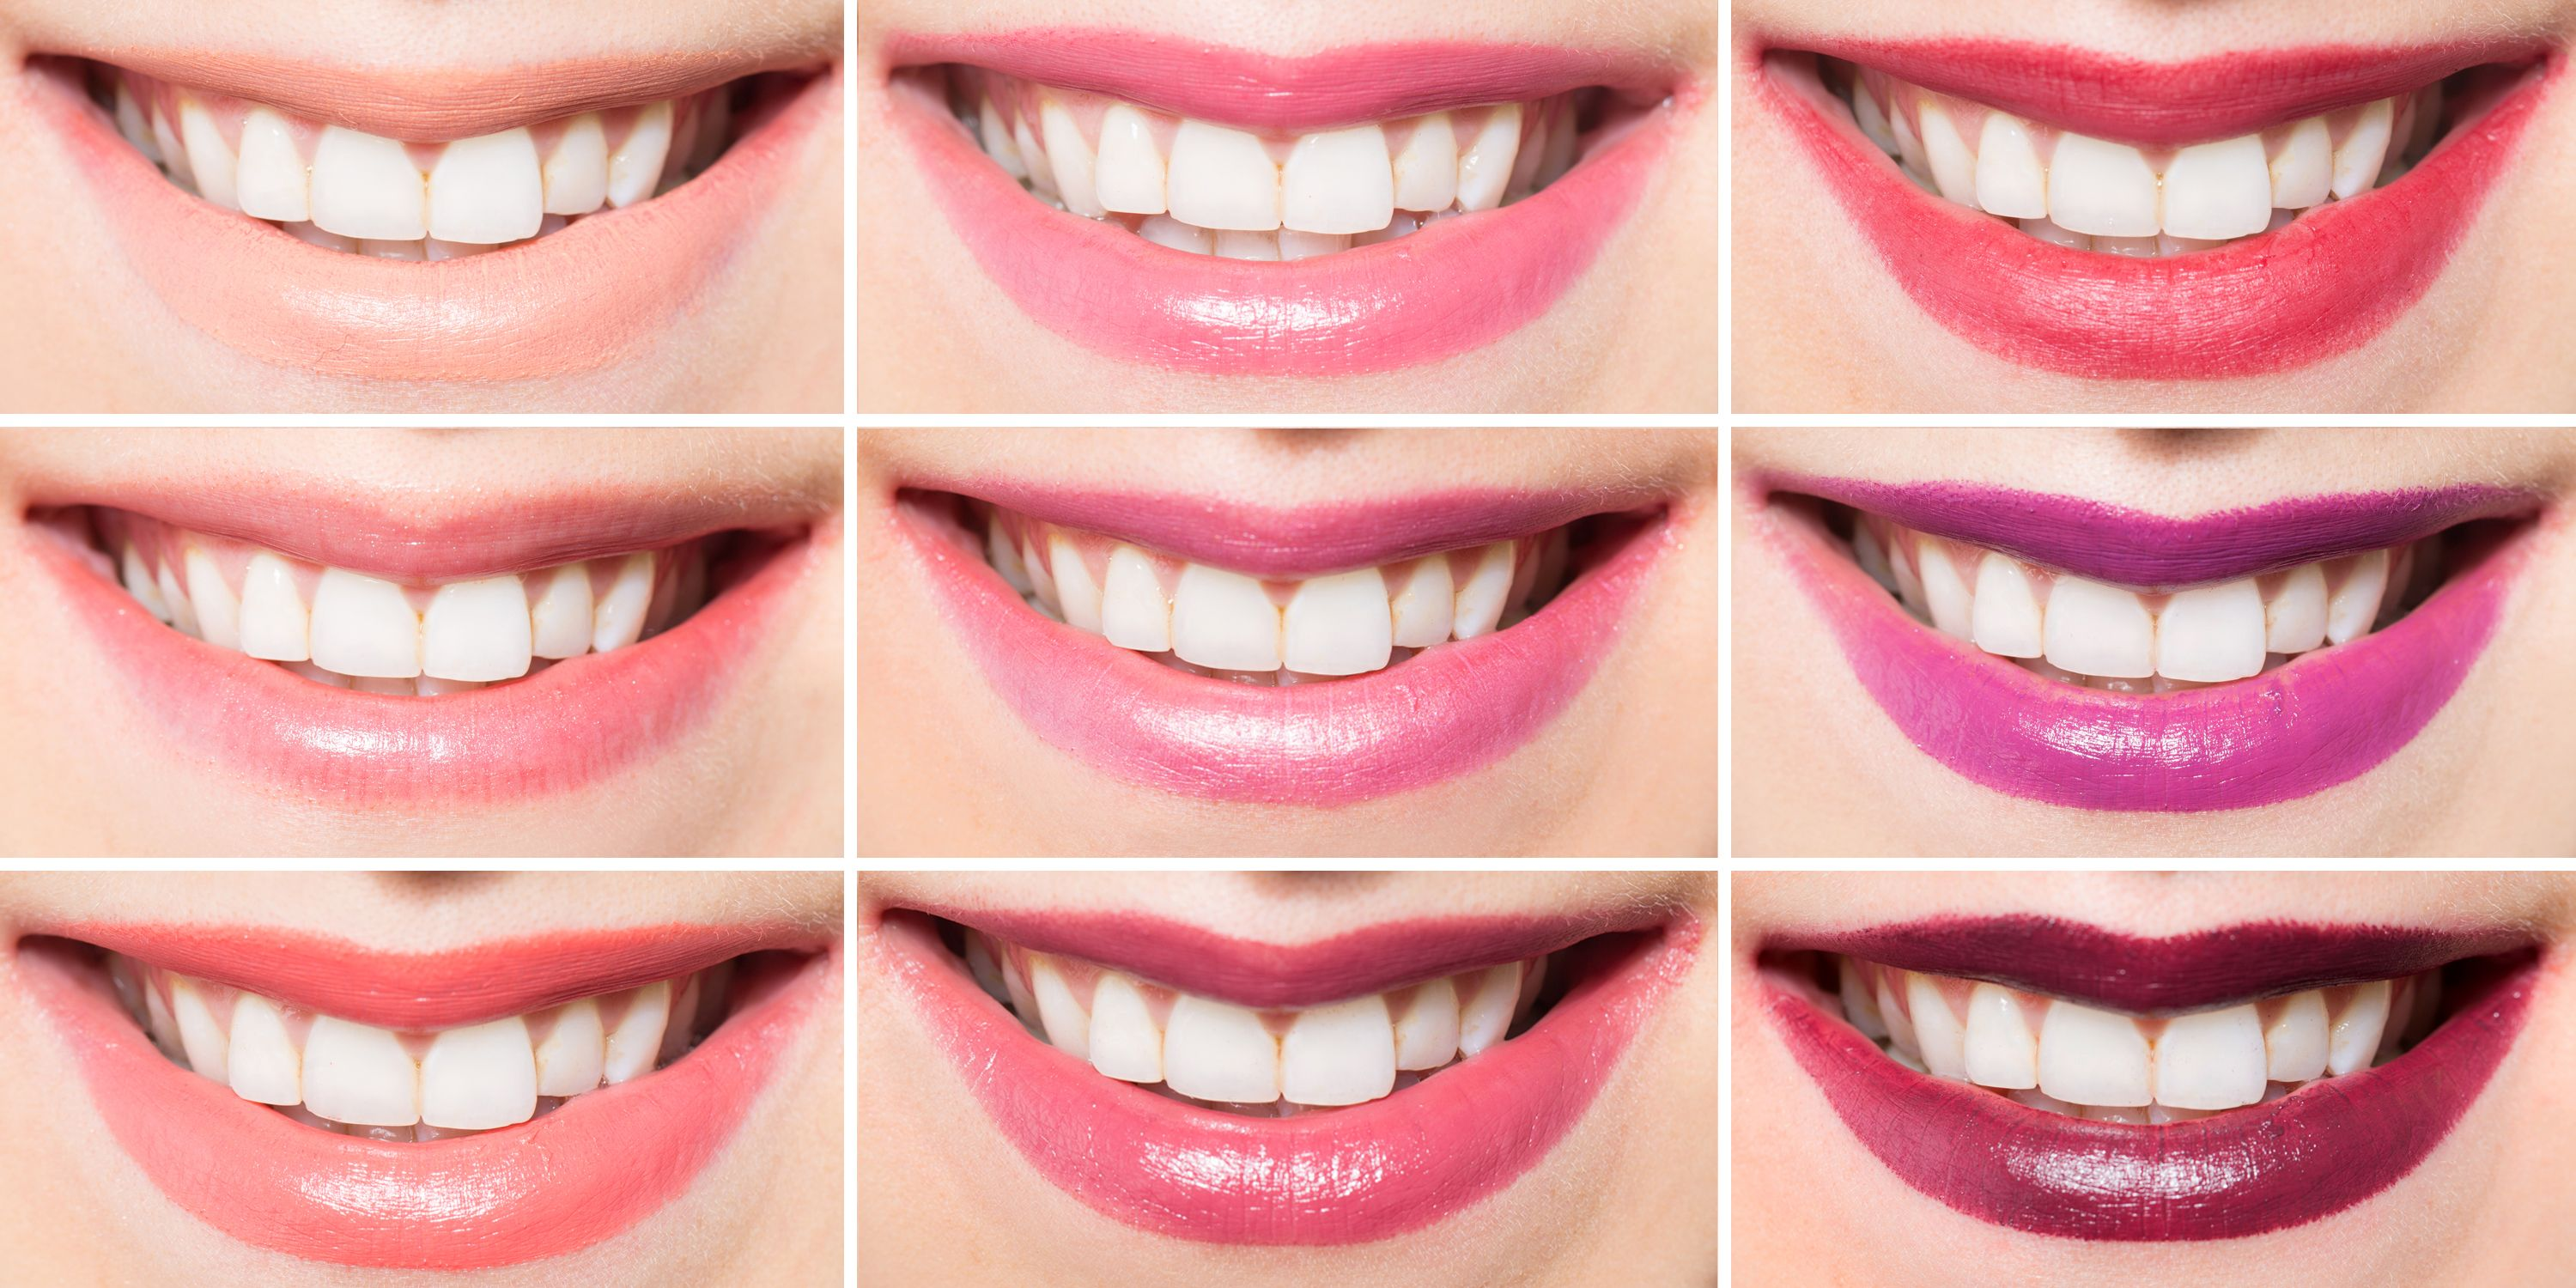 Tips To Make Your Teeth Their Whitest